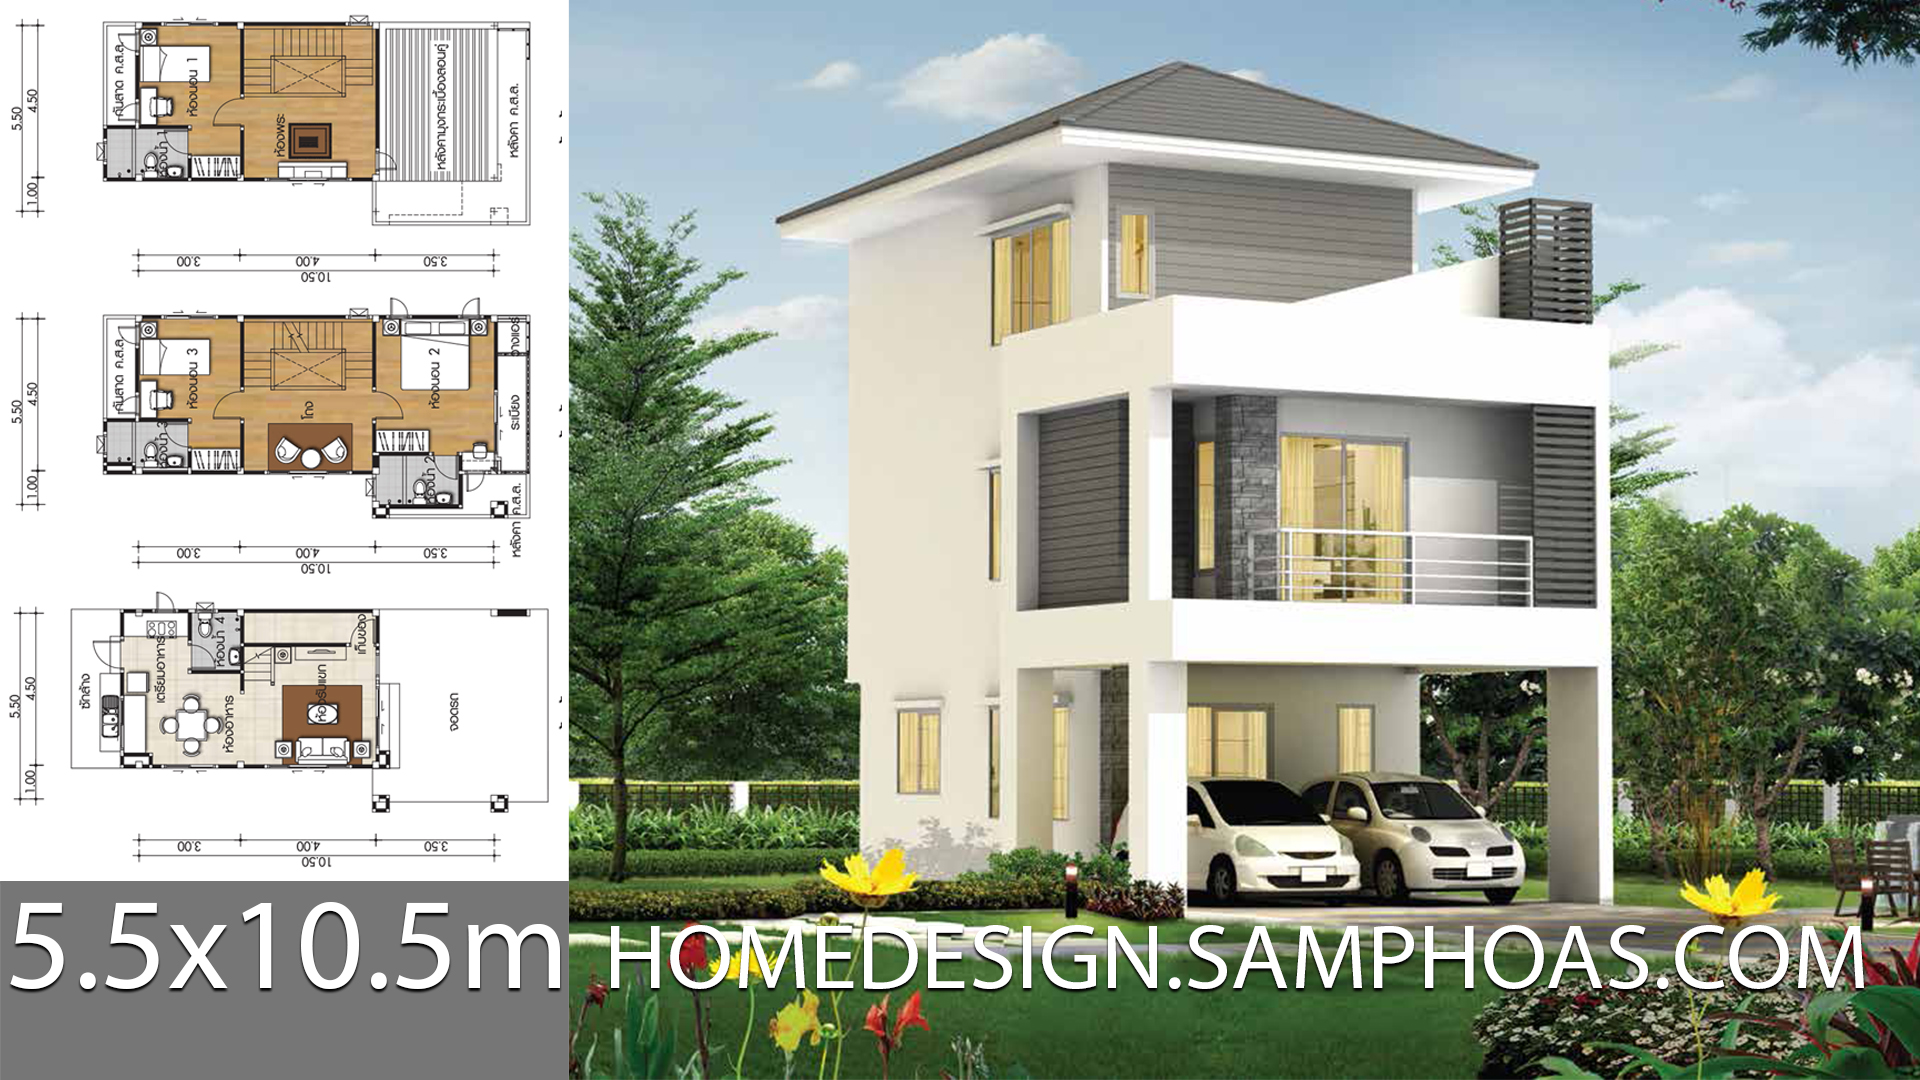 Small House design plans 5.5x10.5m with 3 bedrooms - House Plan Map